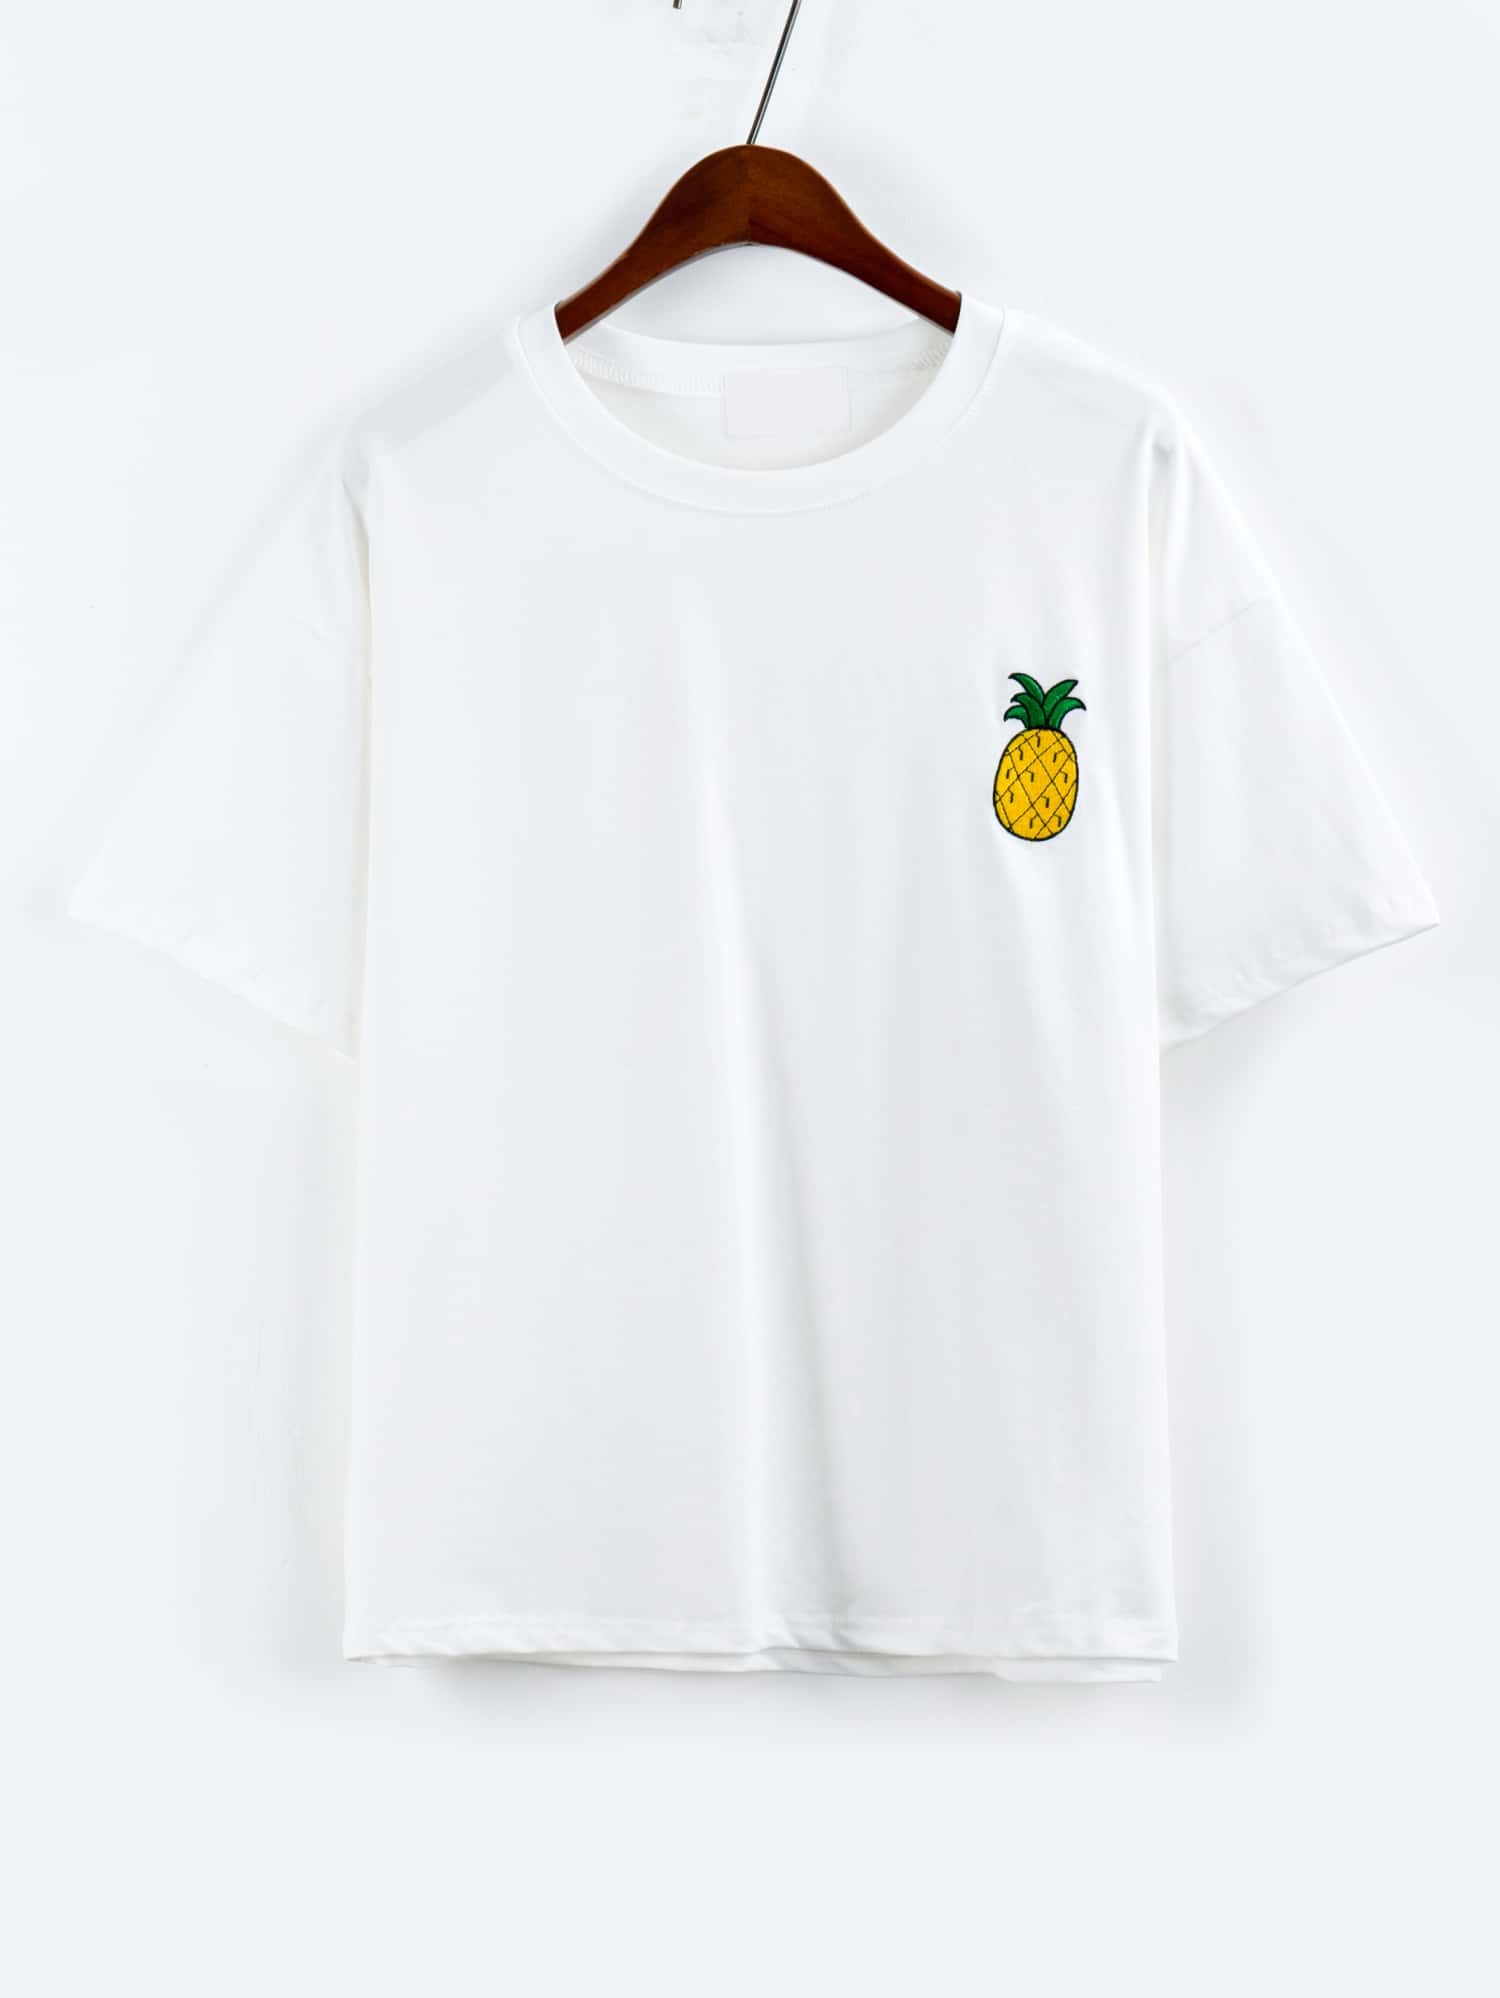 Pineapple Embroidered Drop Shoulder White T-shirt tee160517010